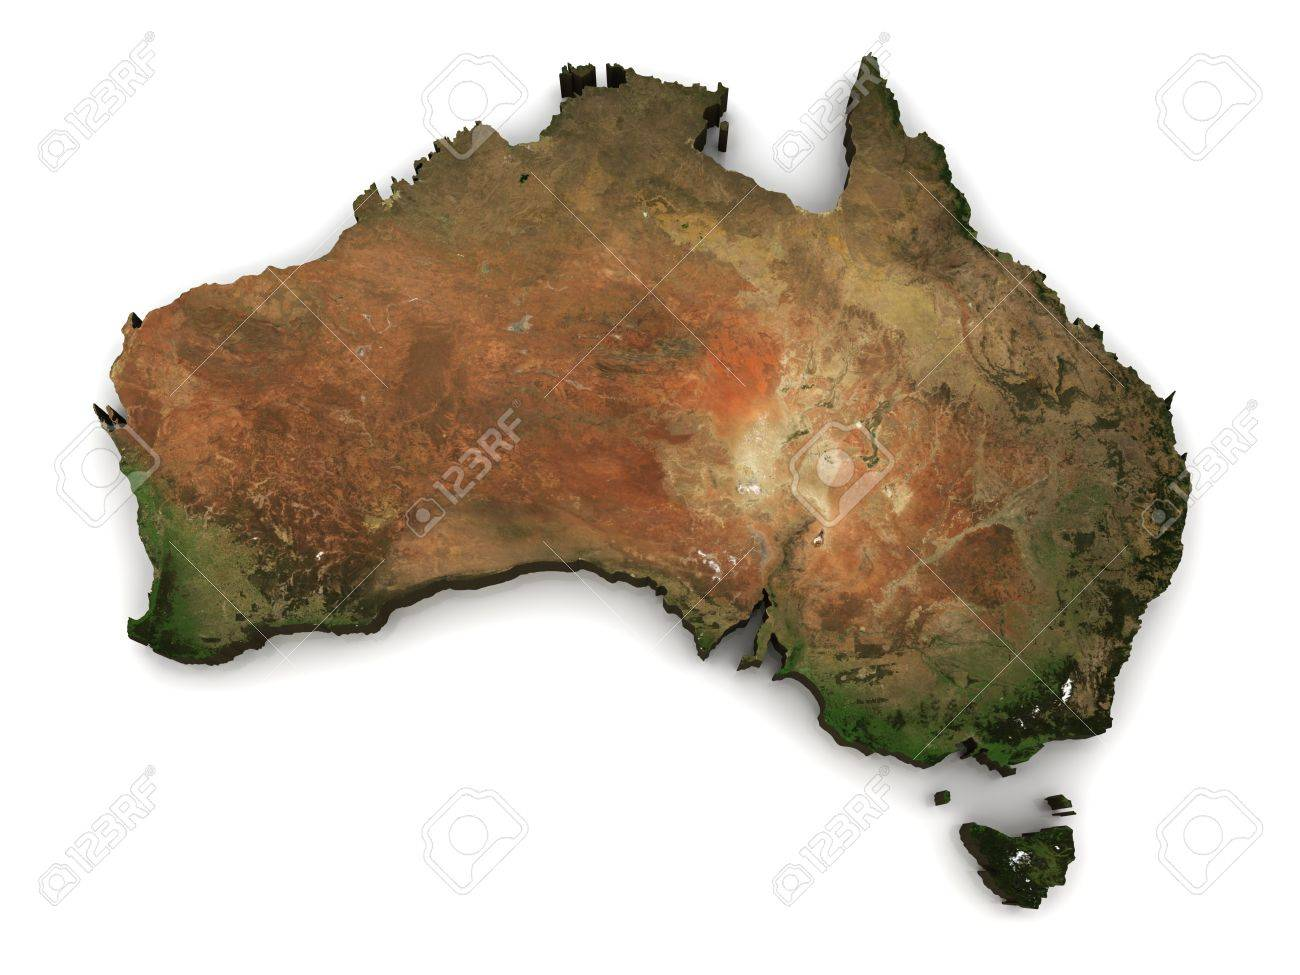 Free 3d Map Of Australia.Australia 3d Topography Map Comes From Earthobervatory Nasa